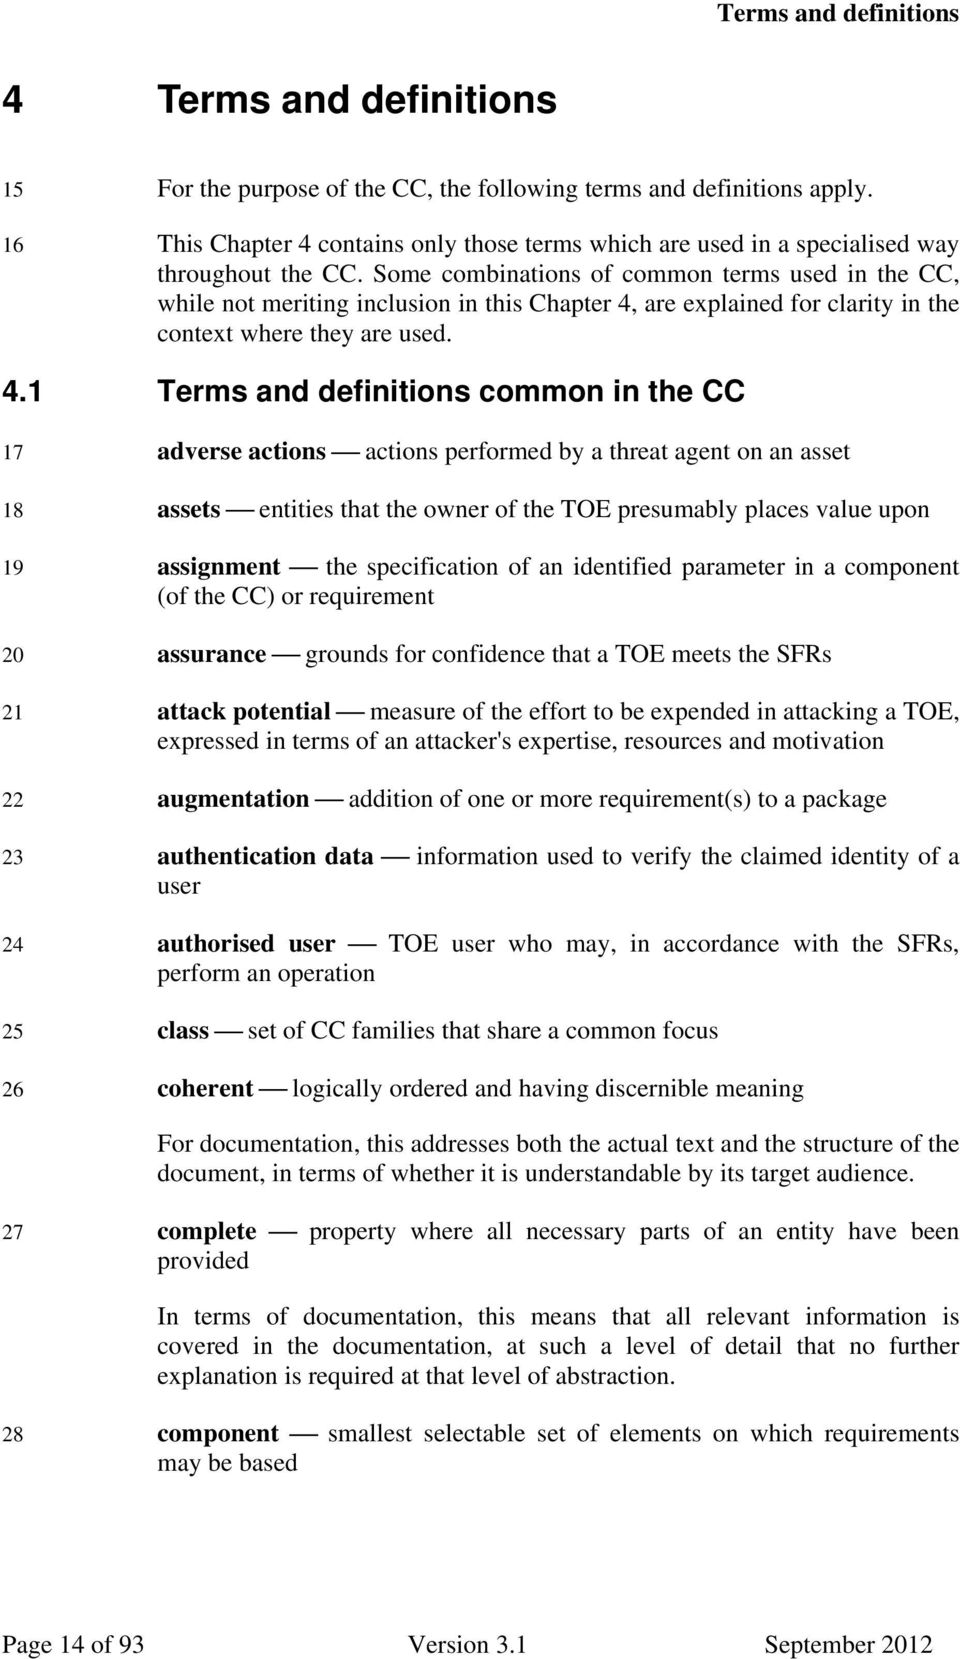 Some combinations of common terms used in the CC, while not meriting inclusion in this Chapter 4,